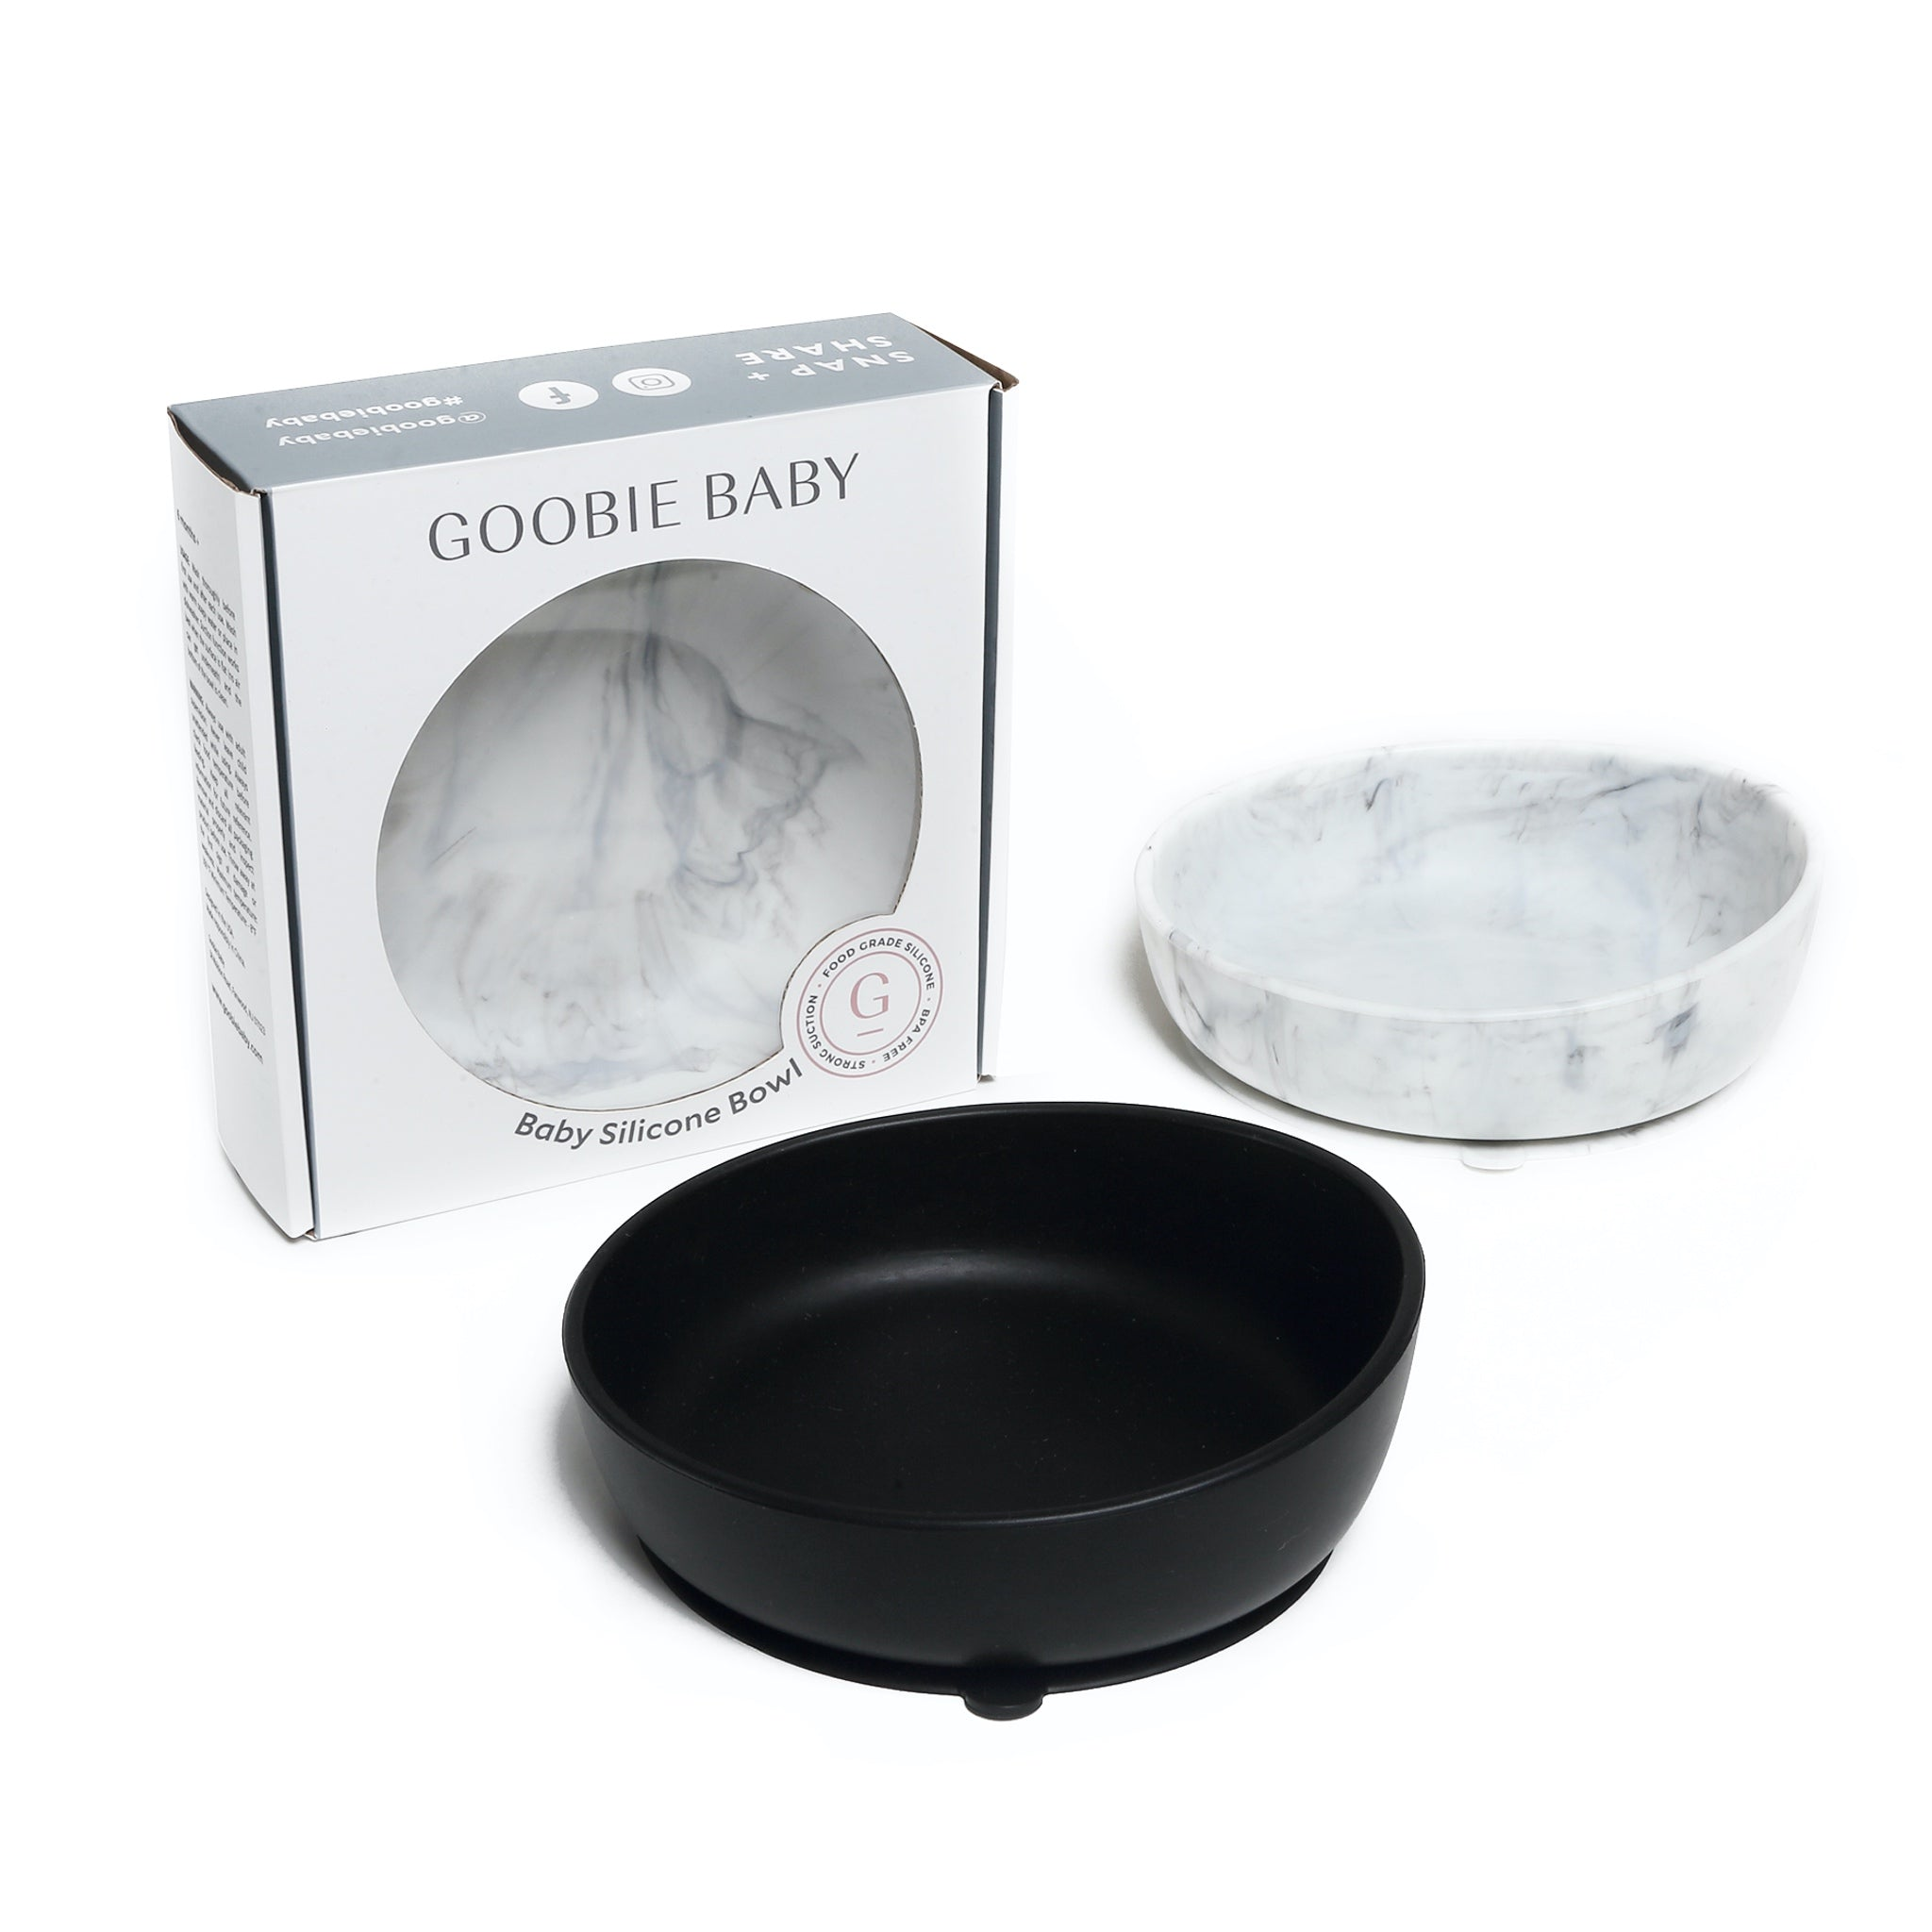 Silicone Baby Bowl Set - Black & Marble